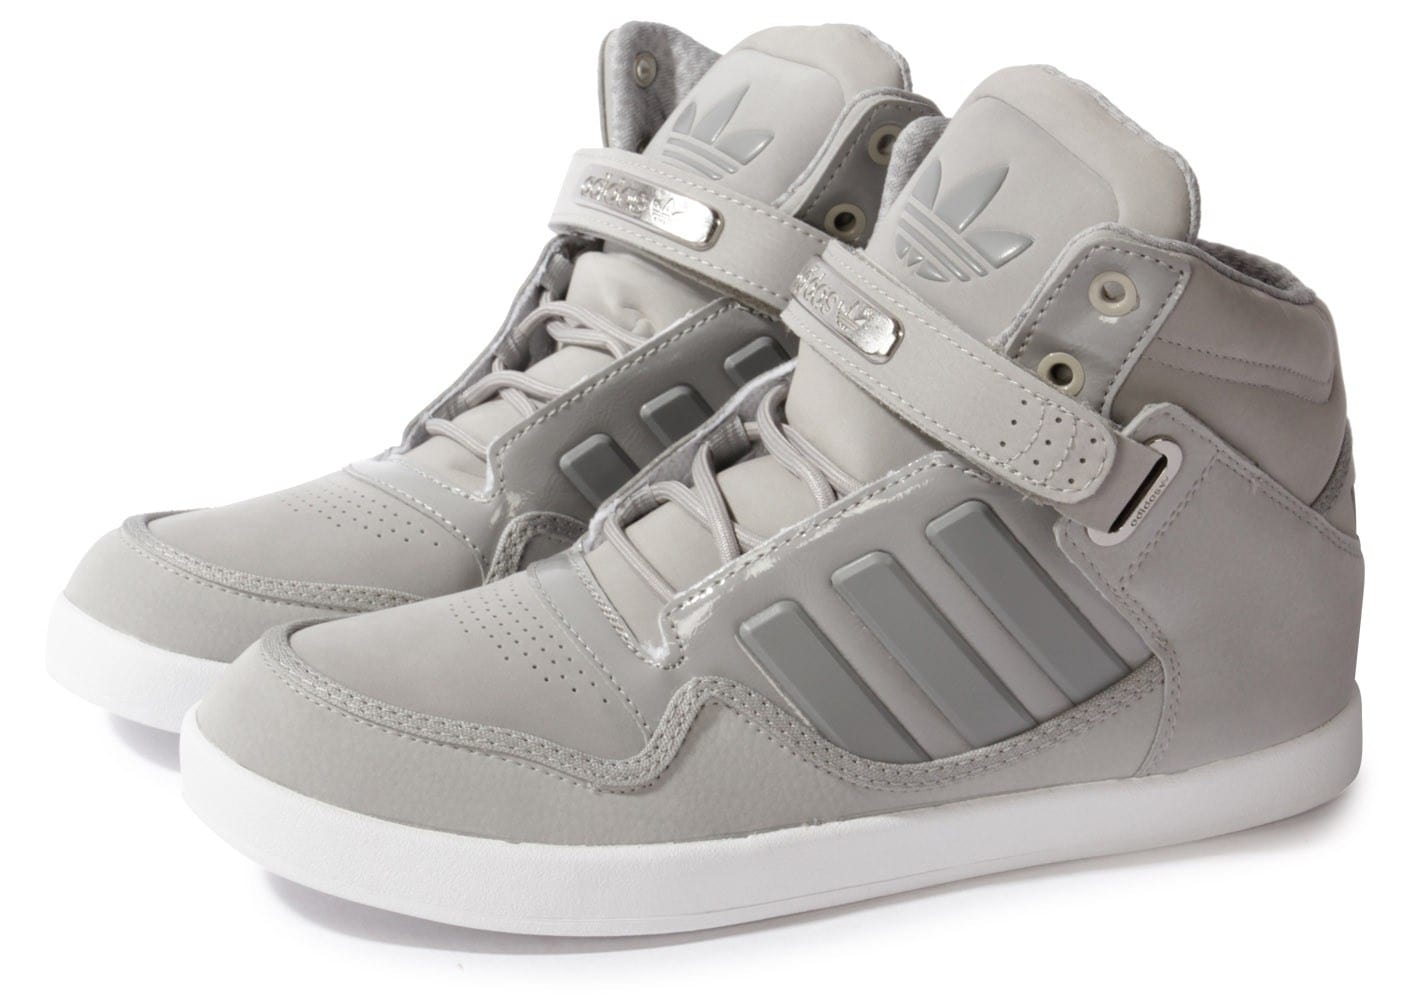 adidas Adi rise 2.0 Grise Chaussures Baskets homme Chausport